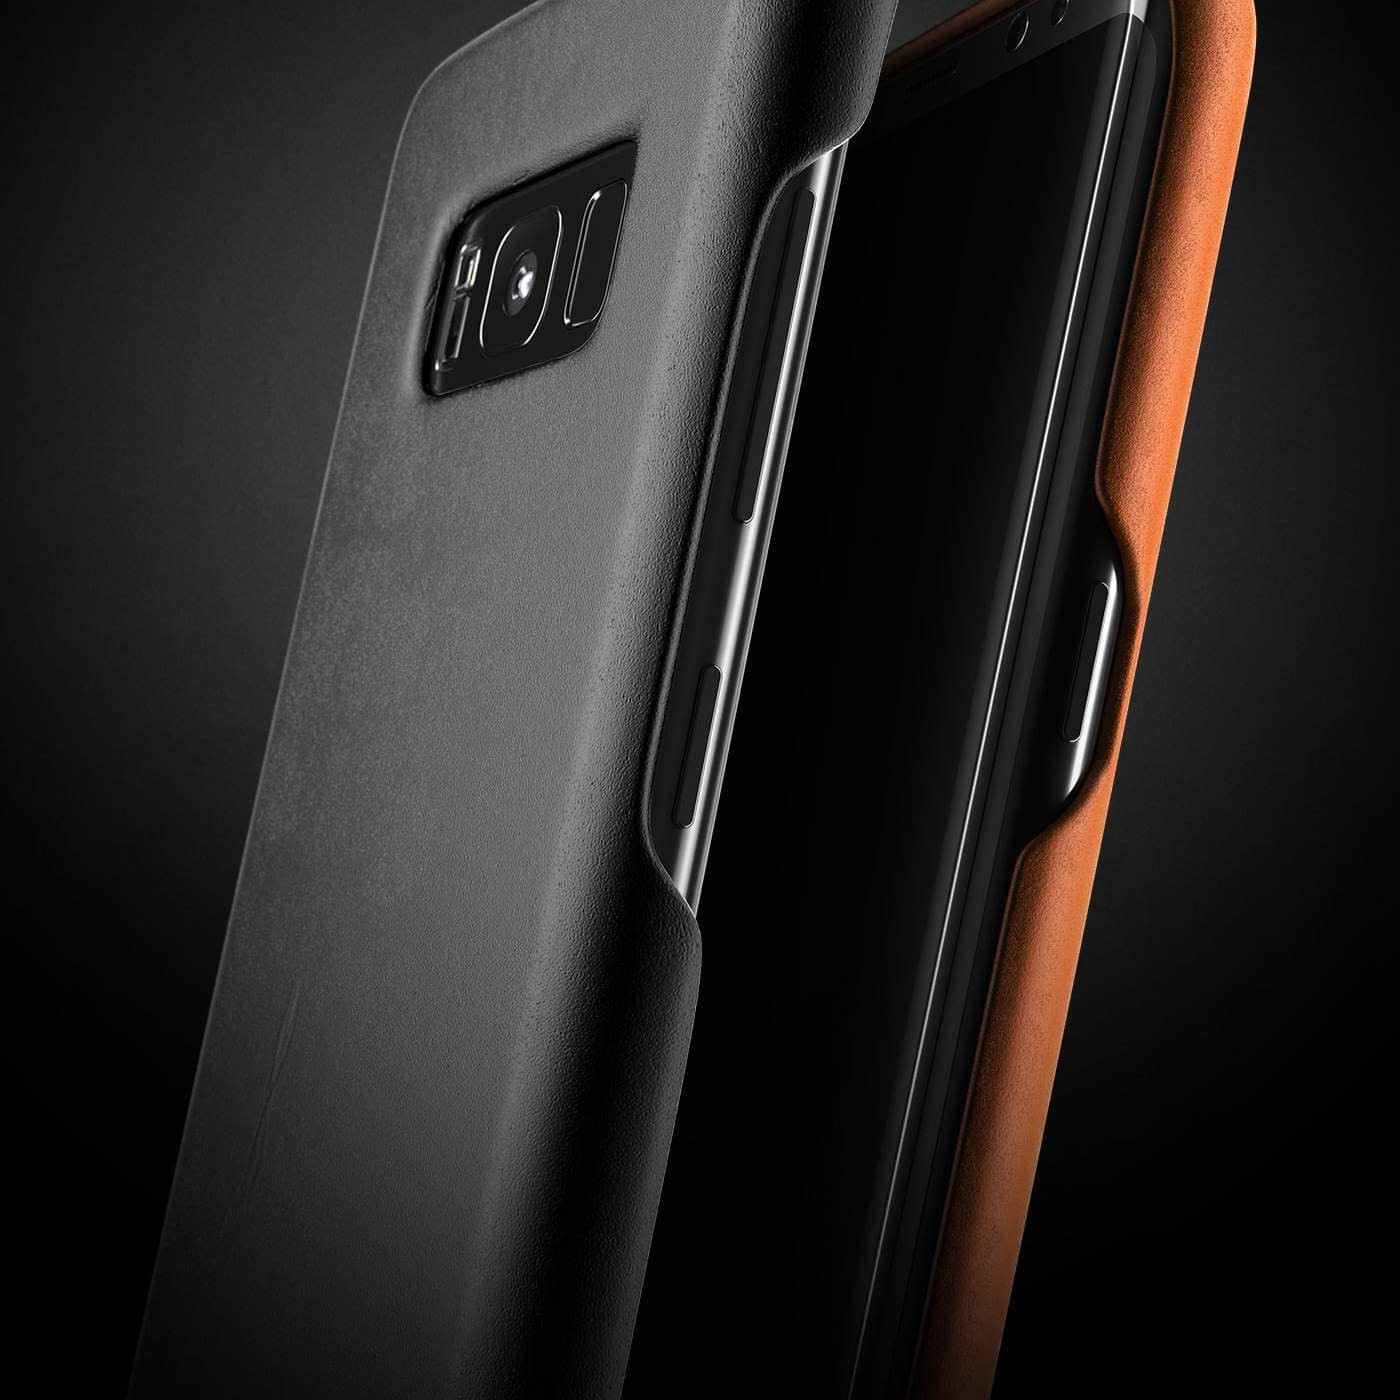 Leather case for Galaxy S8 Black